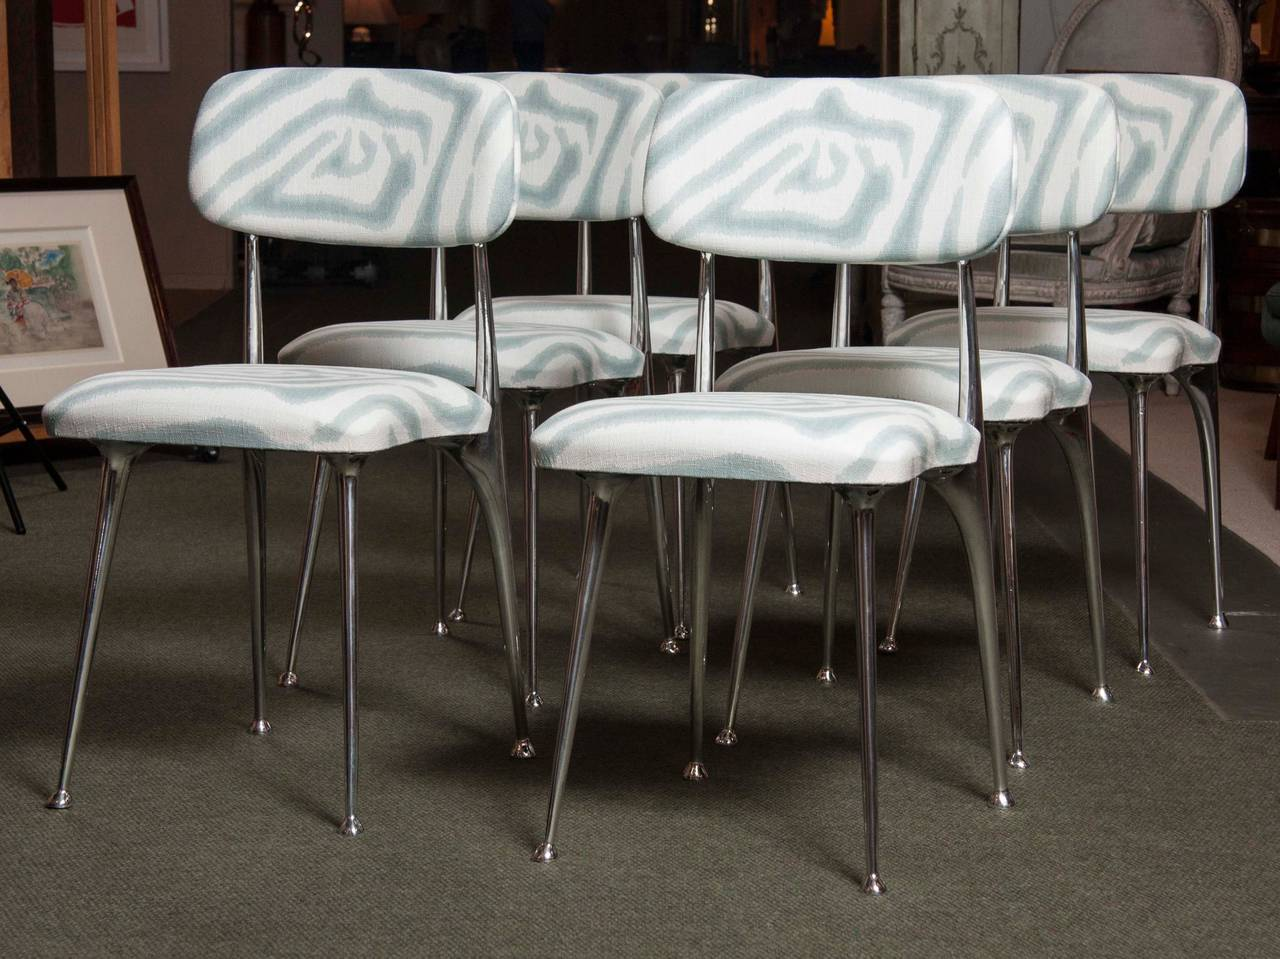 A beautifully upholstered set of mid-20th century, polished-aluminum, dining chairs by Shelby Williams. 6 upholstered in fabric shown.